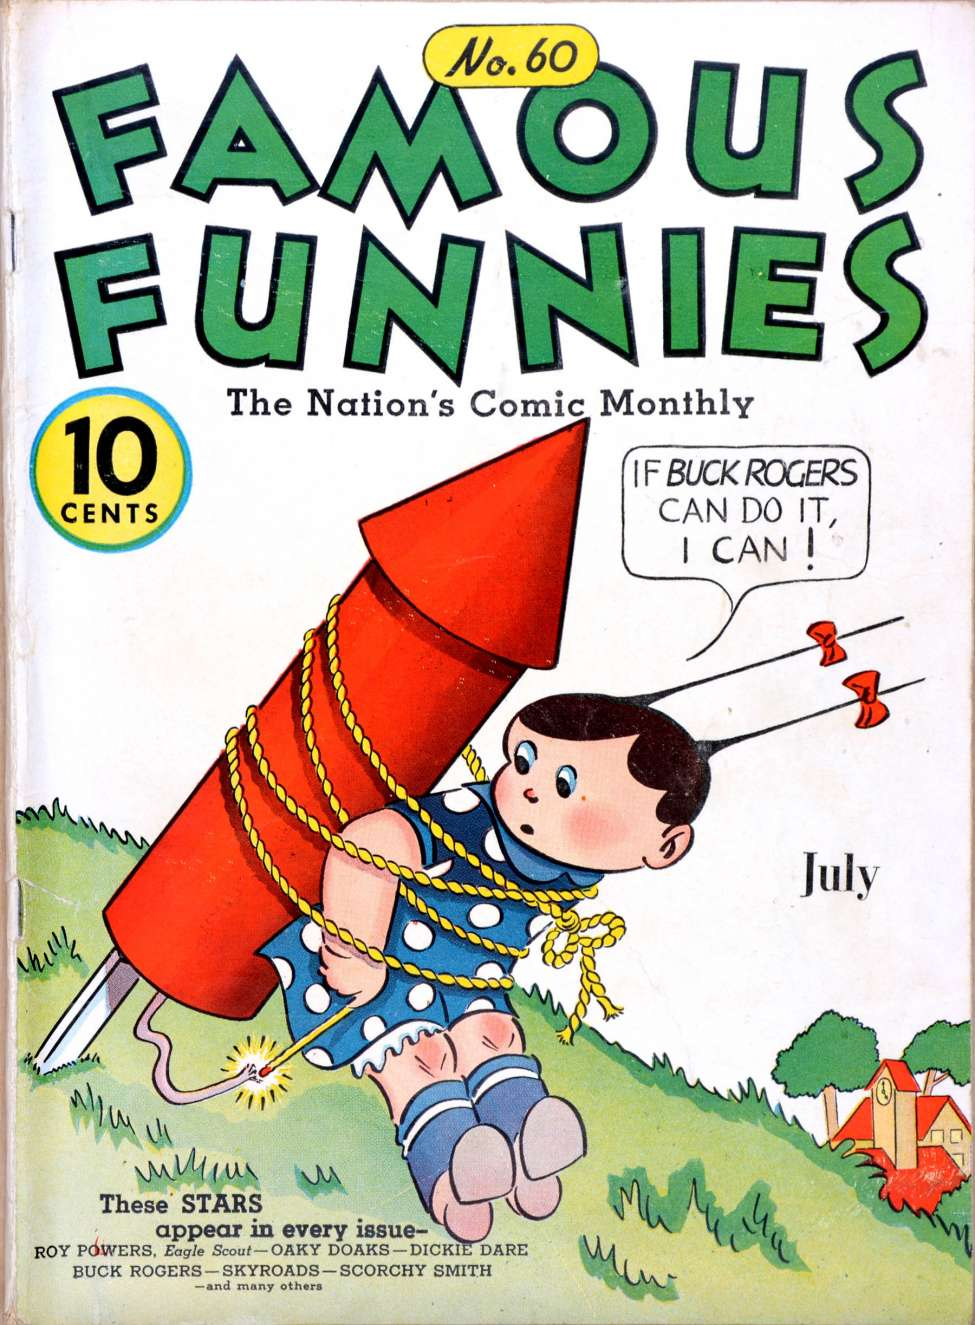 Comic Book Cover For Famous Funnies #60 - Version 2